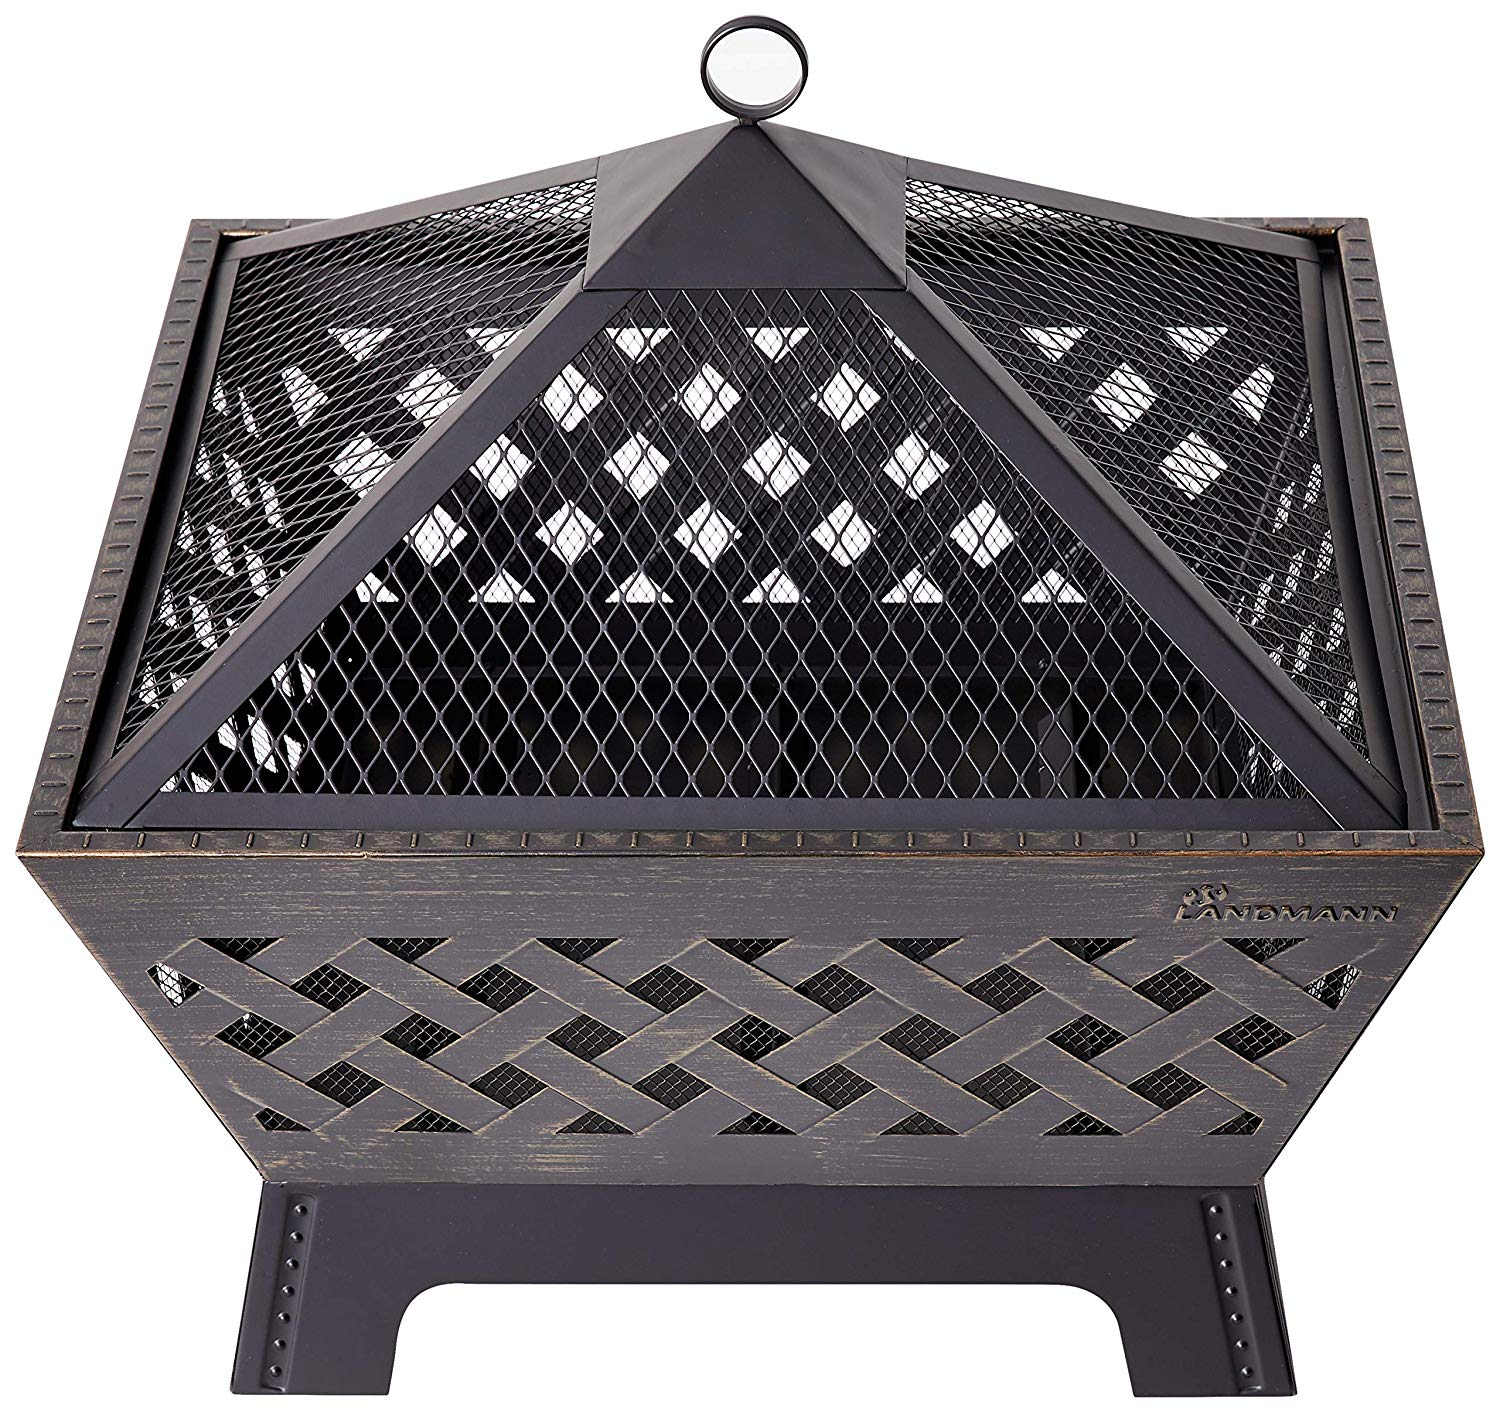 If you like this traditional fire-pit design, it is on sale now for under $100 Photo via Amazon)